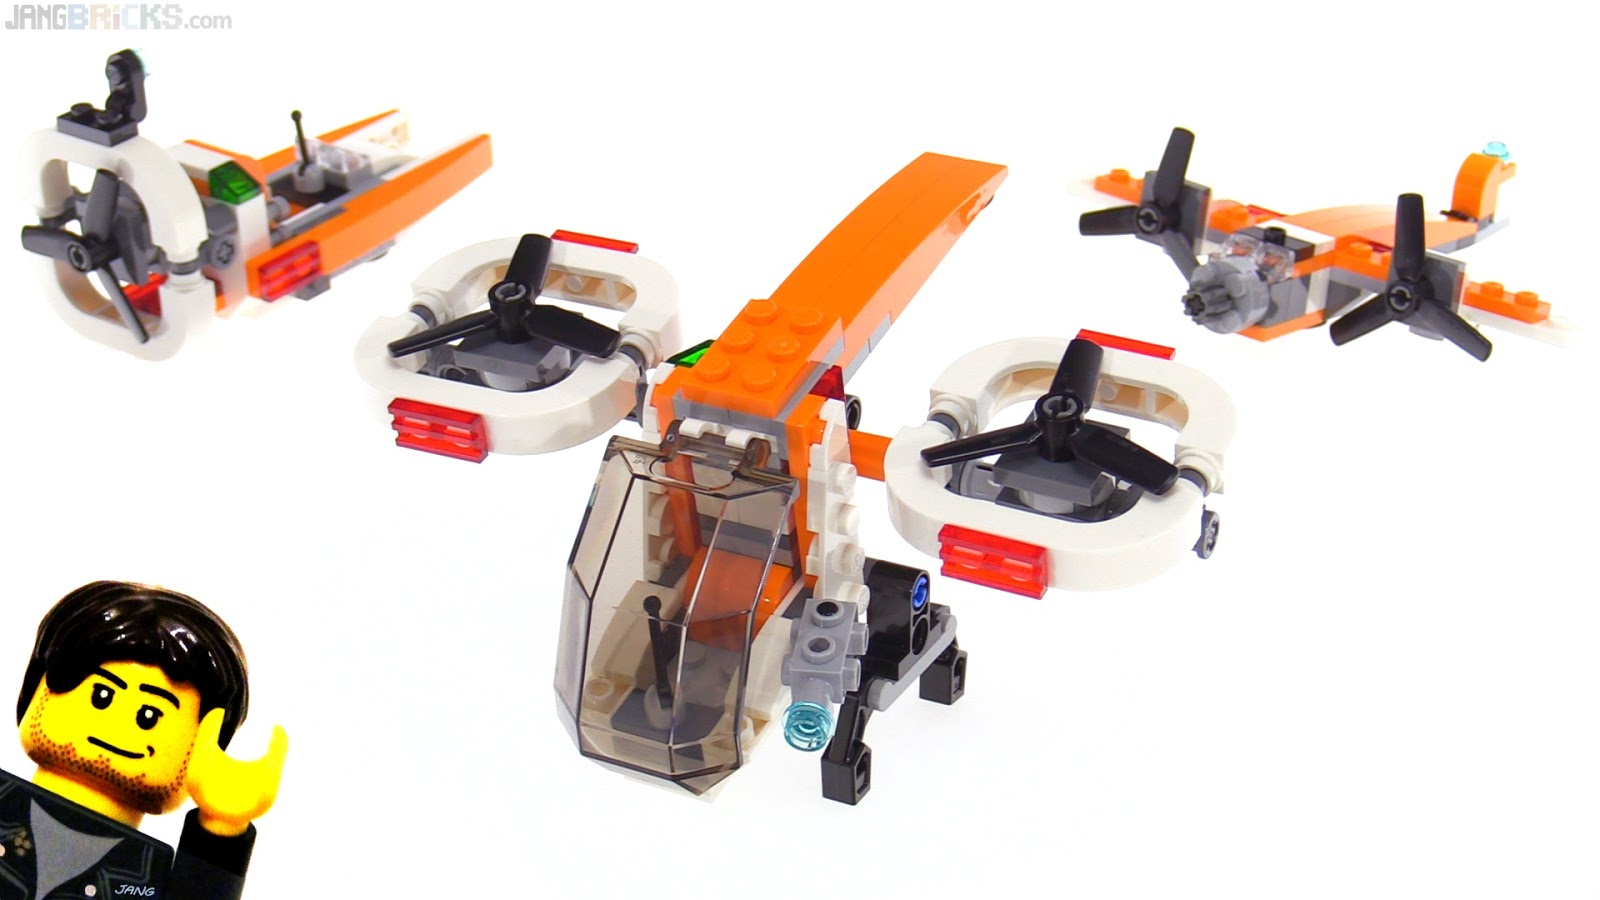 LEGO Creator 3-in-1 Drone Explorer review 31071